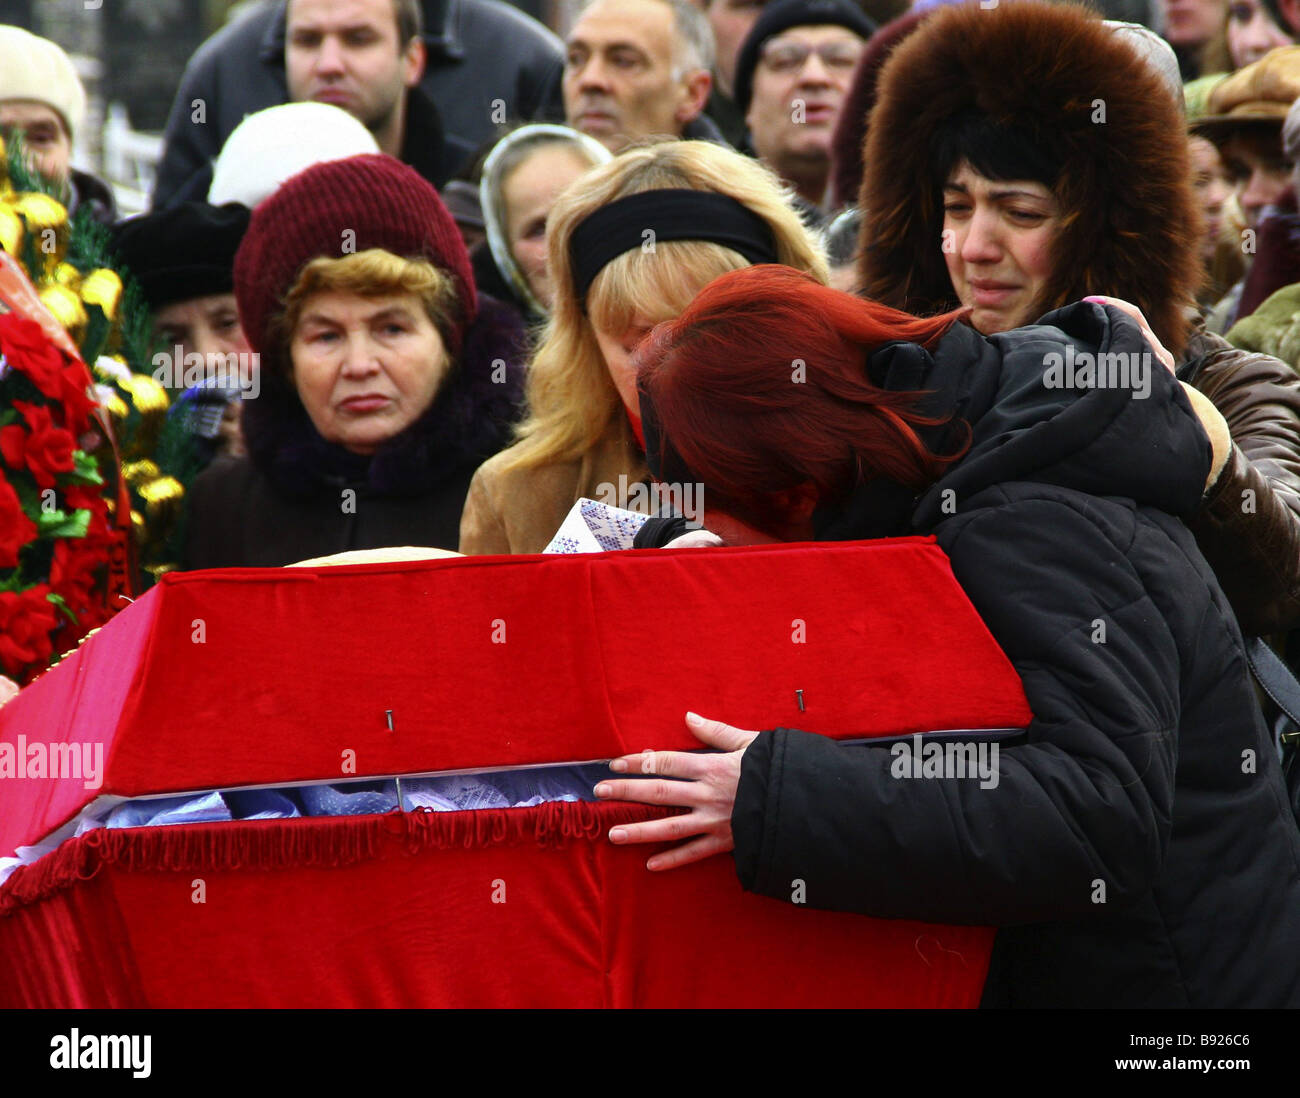 The first funerals of miners who died in an explosion at the Zasyadko mine in the Donetsk region of Ukraine - Stock Image